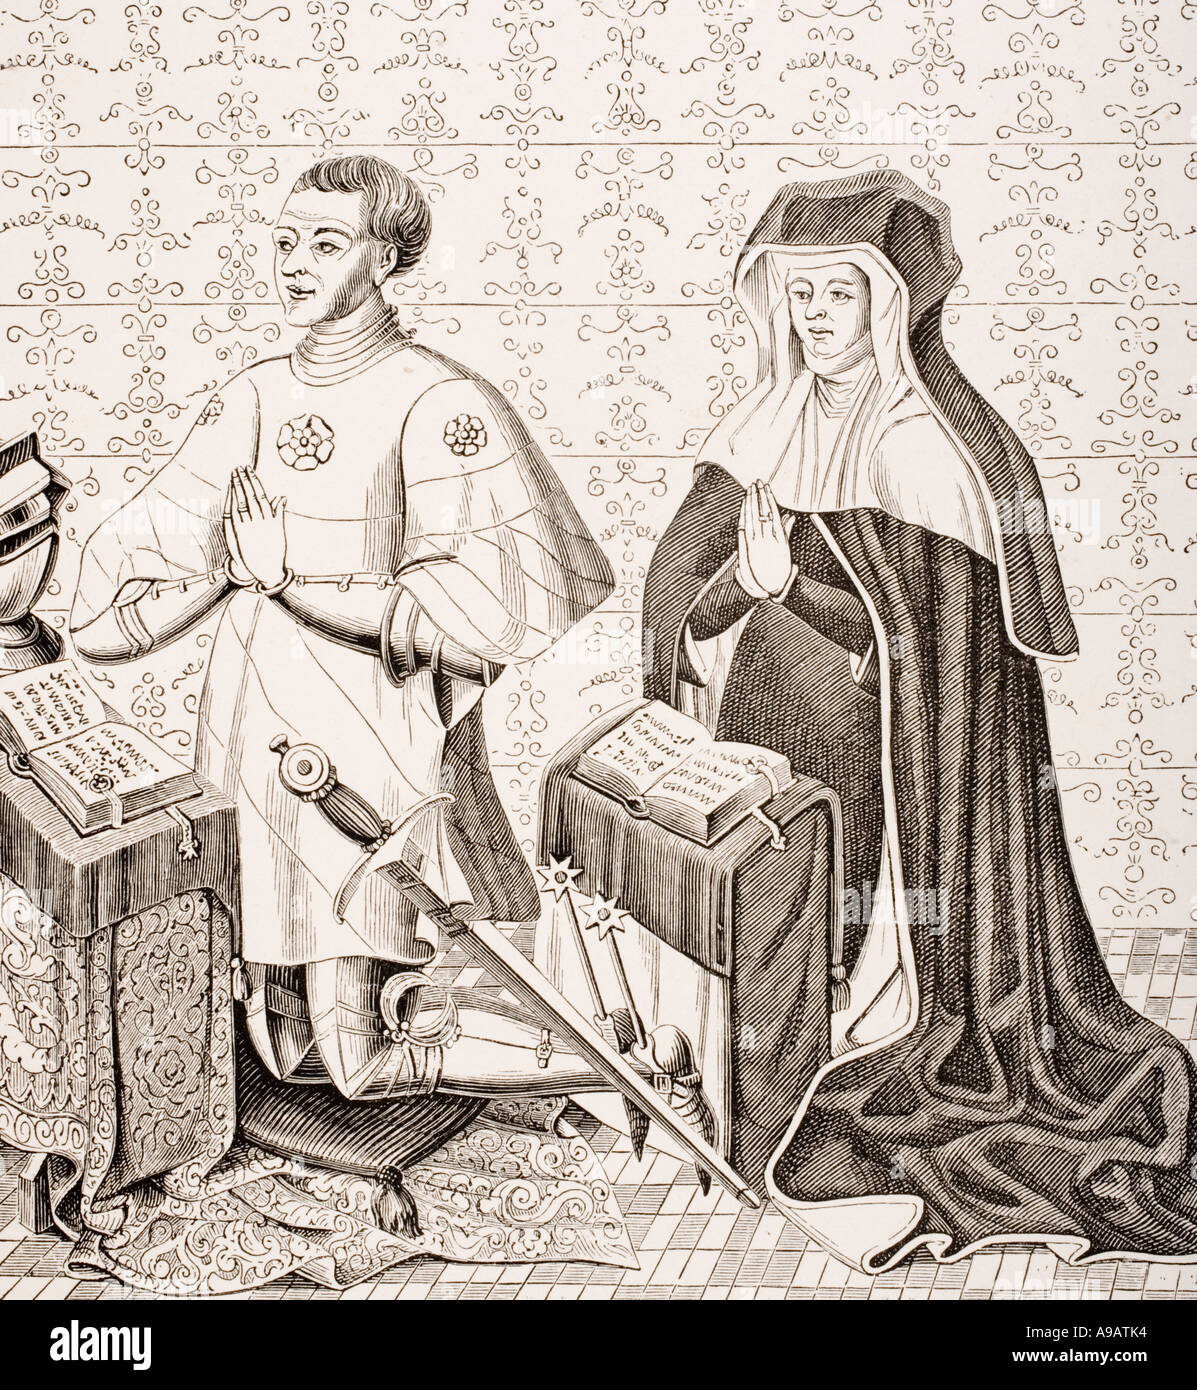 Jean Jouvenel des Ursins provost of the Merchants of Paris and his wife Michelle de Vitry - Stock Image